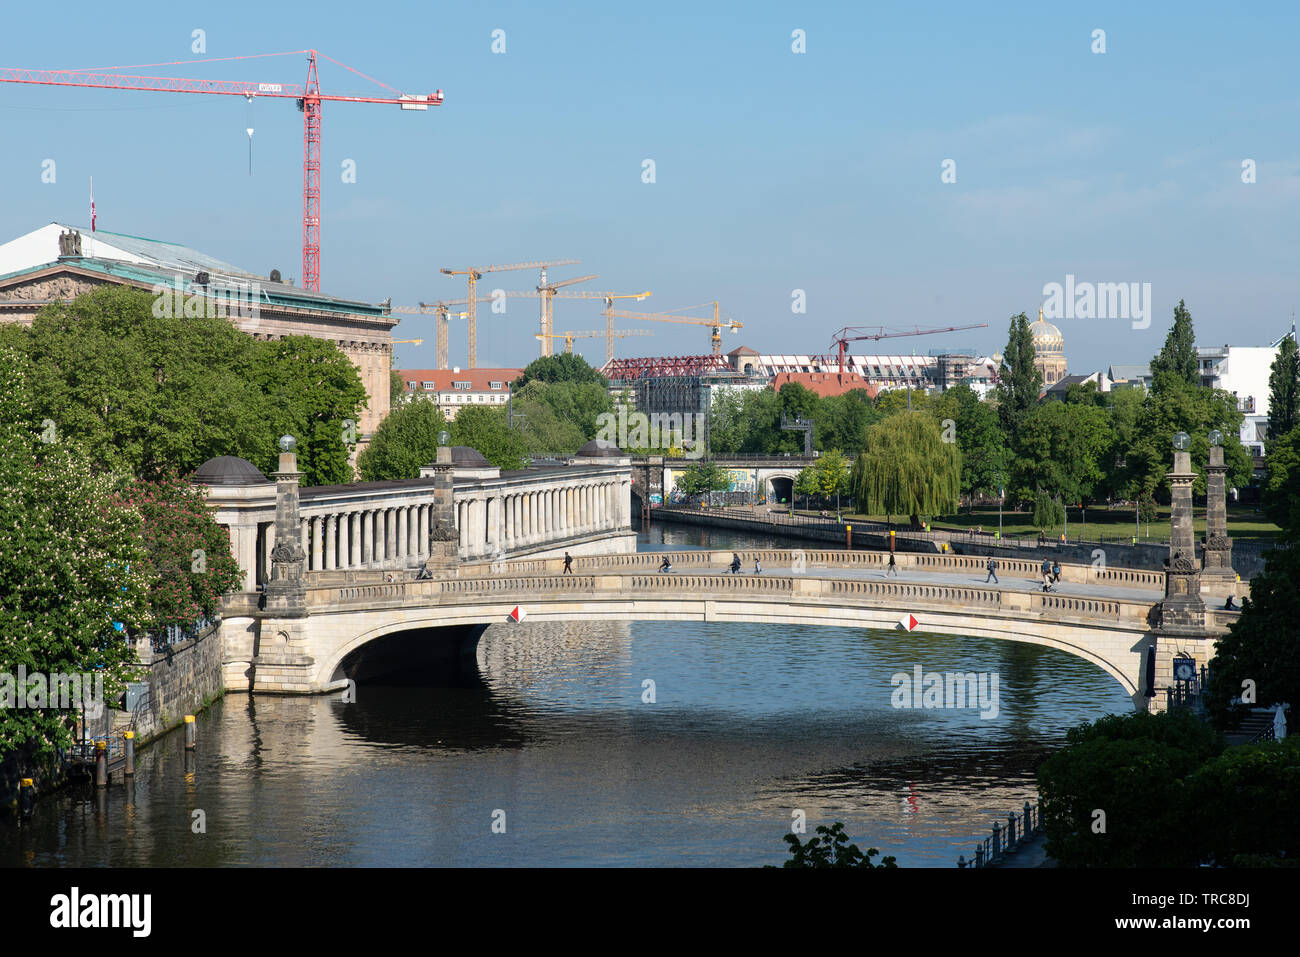 Friedrichbrücke over the river Spree leading to museum island, Berlin, Germany. - Stock Image